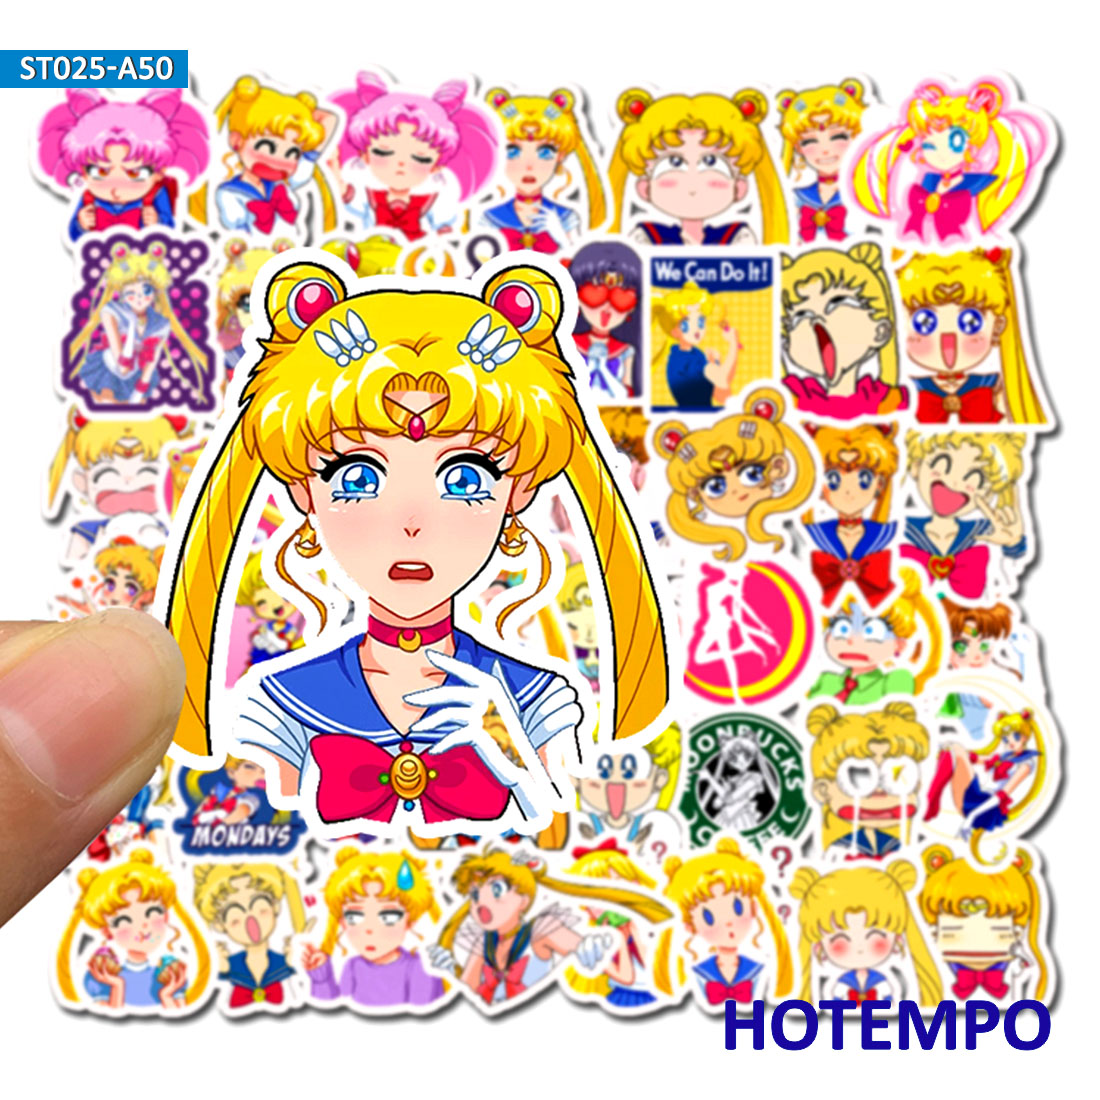 50pcs Anime Pretty Soldier Sailor Moon Stickers For DIY Mobile Phone Laptop Luggage Suitcase Guitar Skateboard Decal Stickers